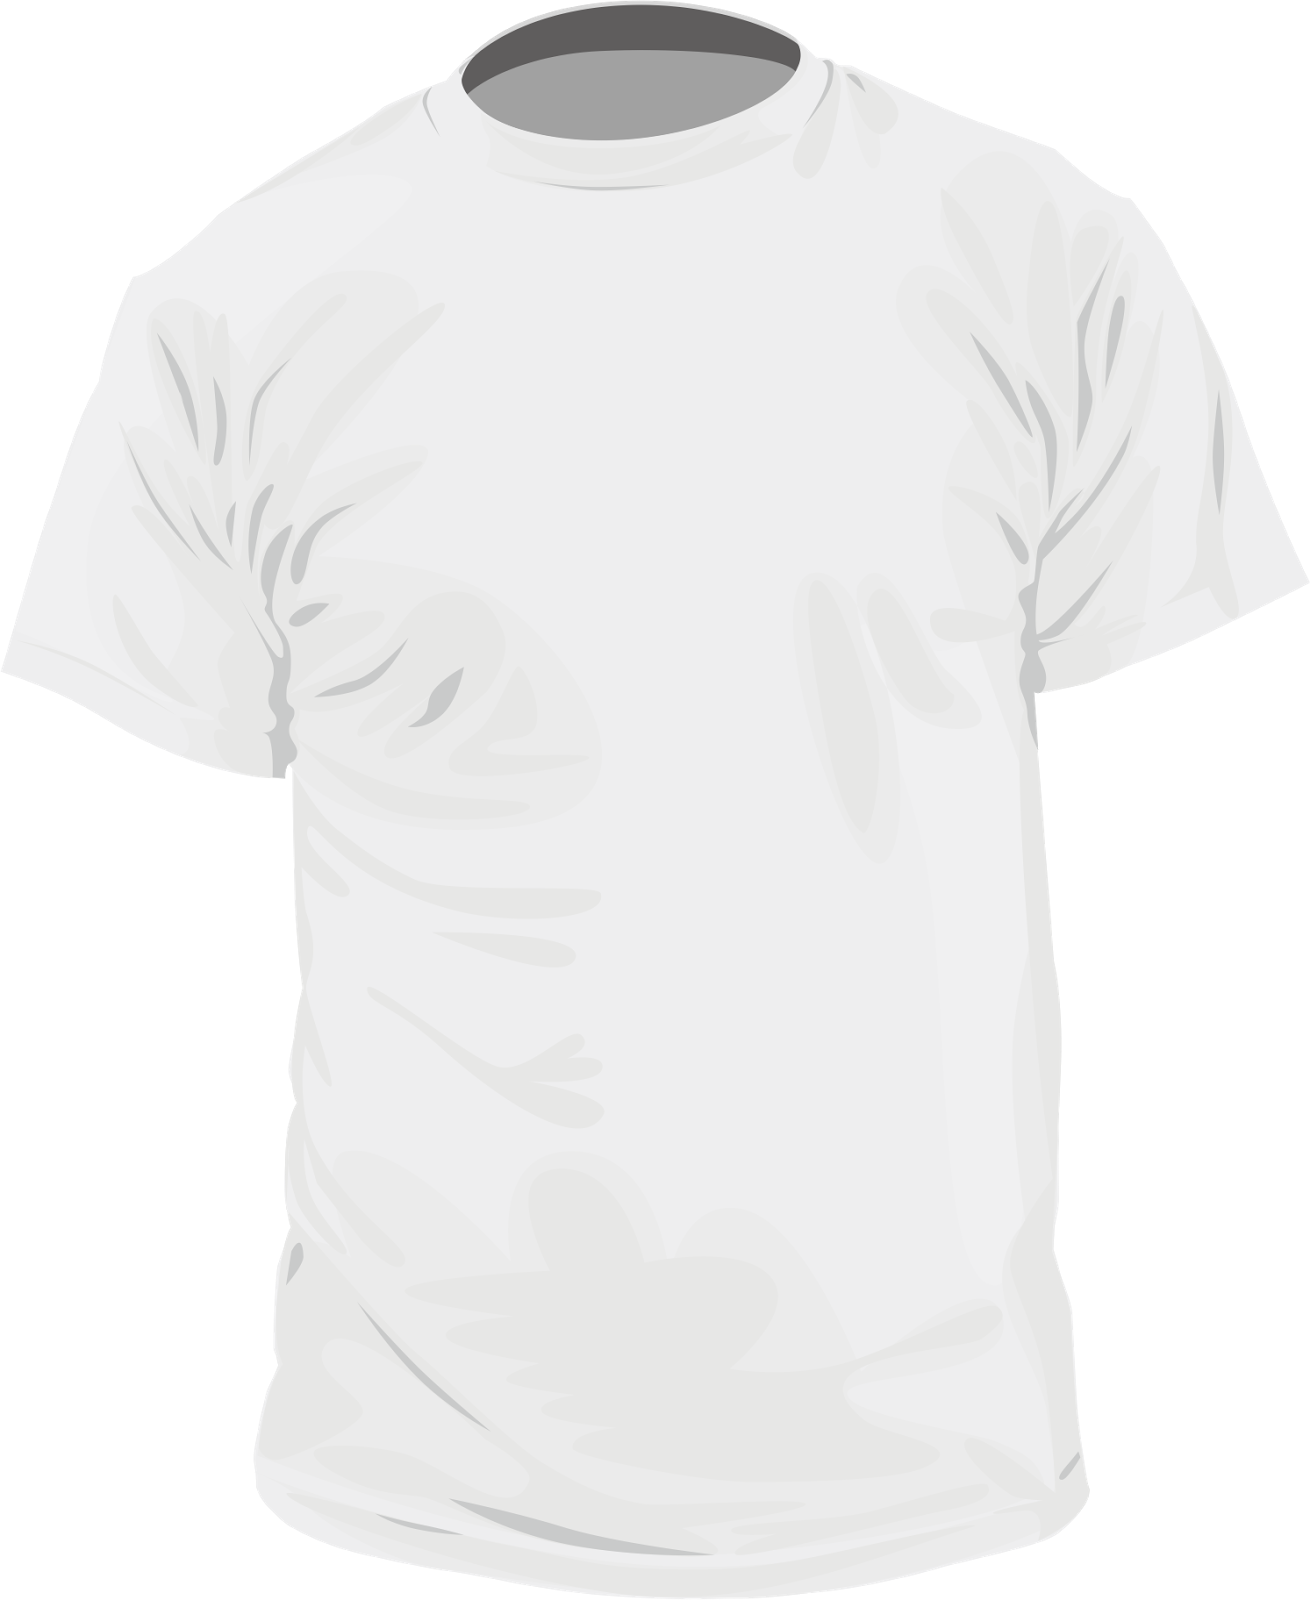 Download Vector Logo Template T Shirt Kaos Putih White Kaos Desain Logo Desain